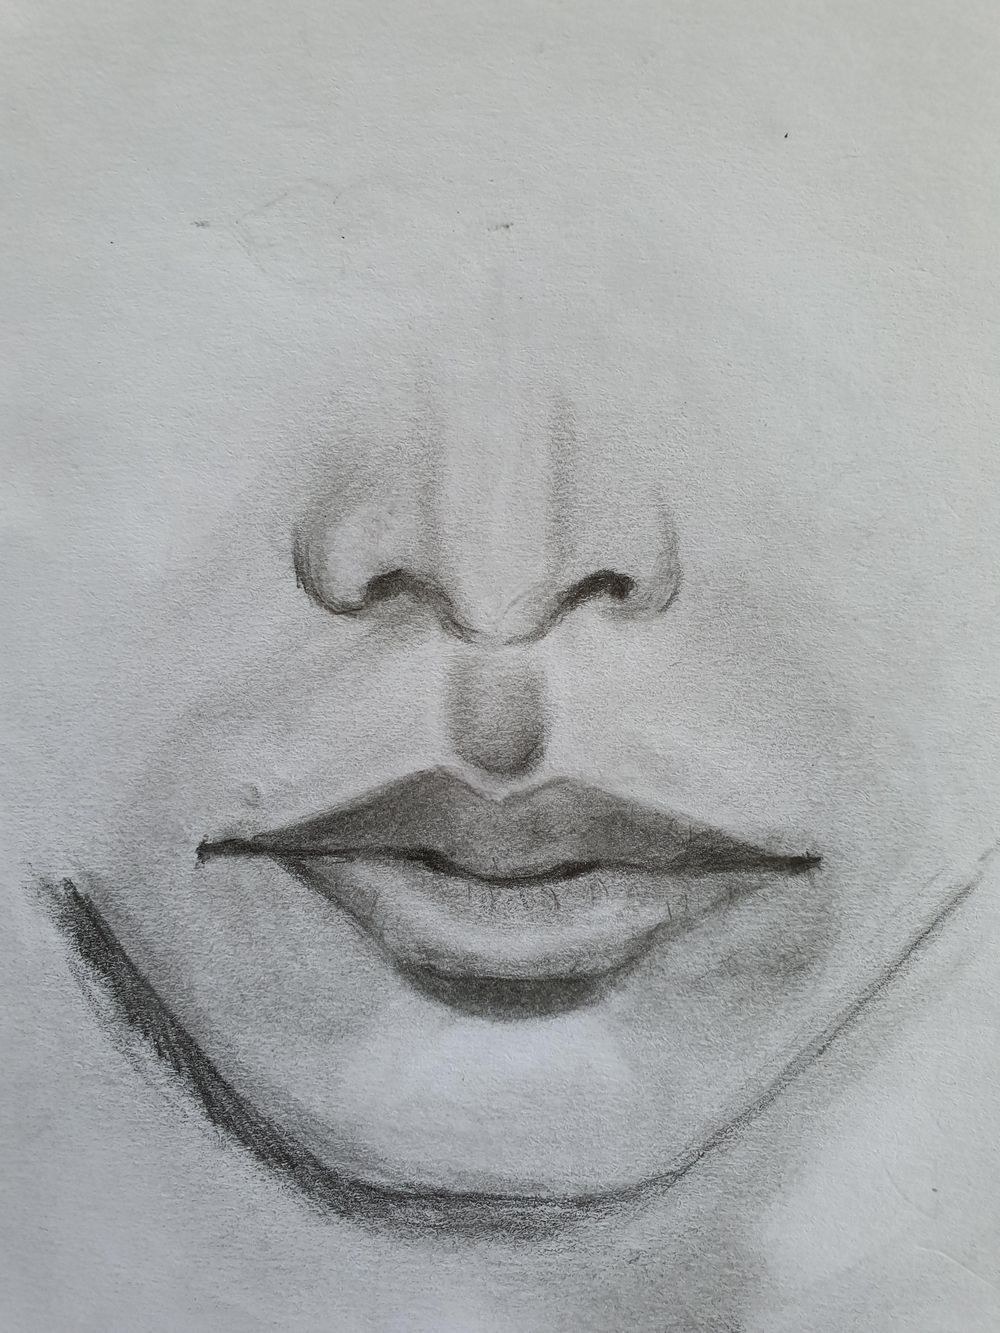 Pencil Portrait with improvised materials - image 3 - student project